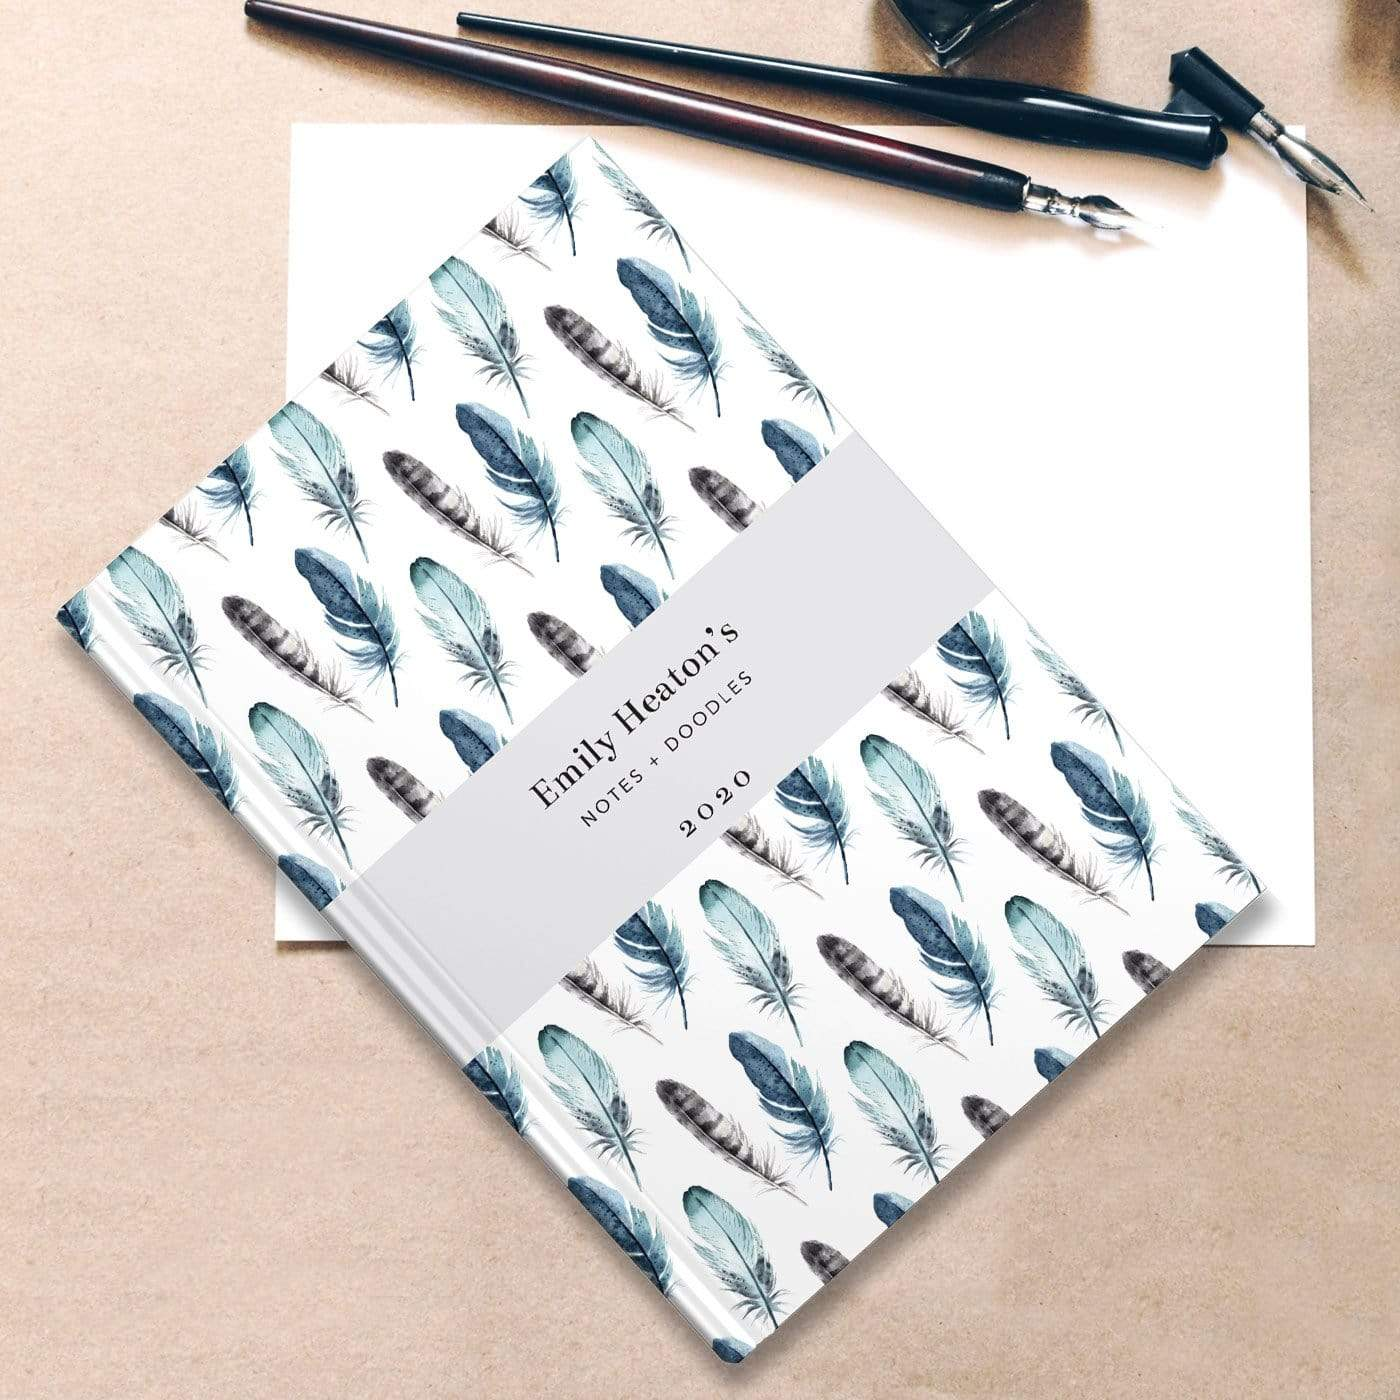 letterfest notebook Watercolour Feathers